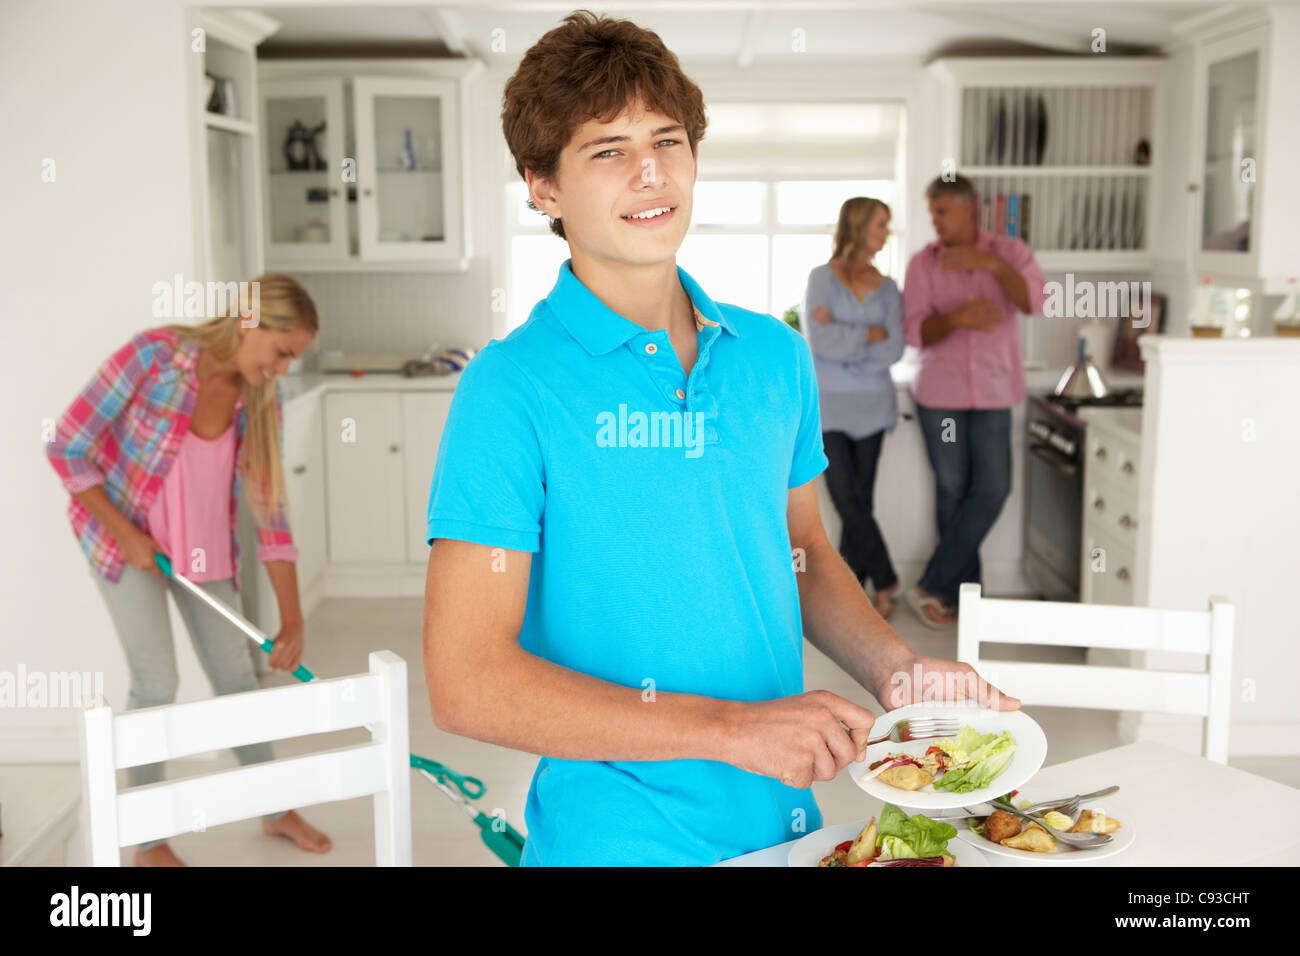 Teenagers helping with housework - Stock Image